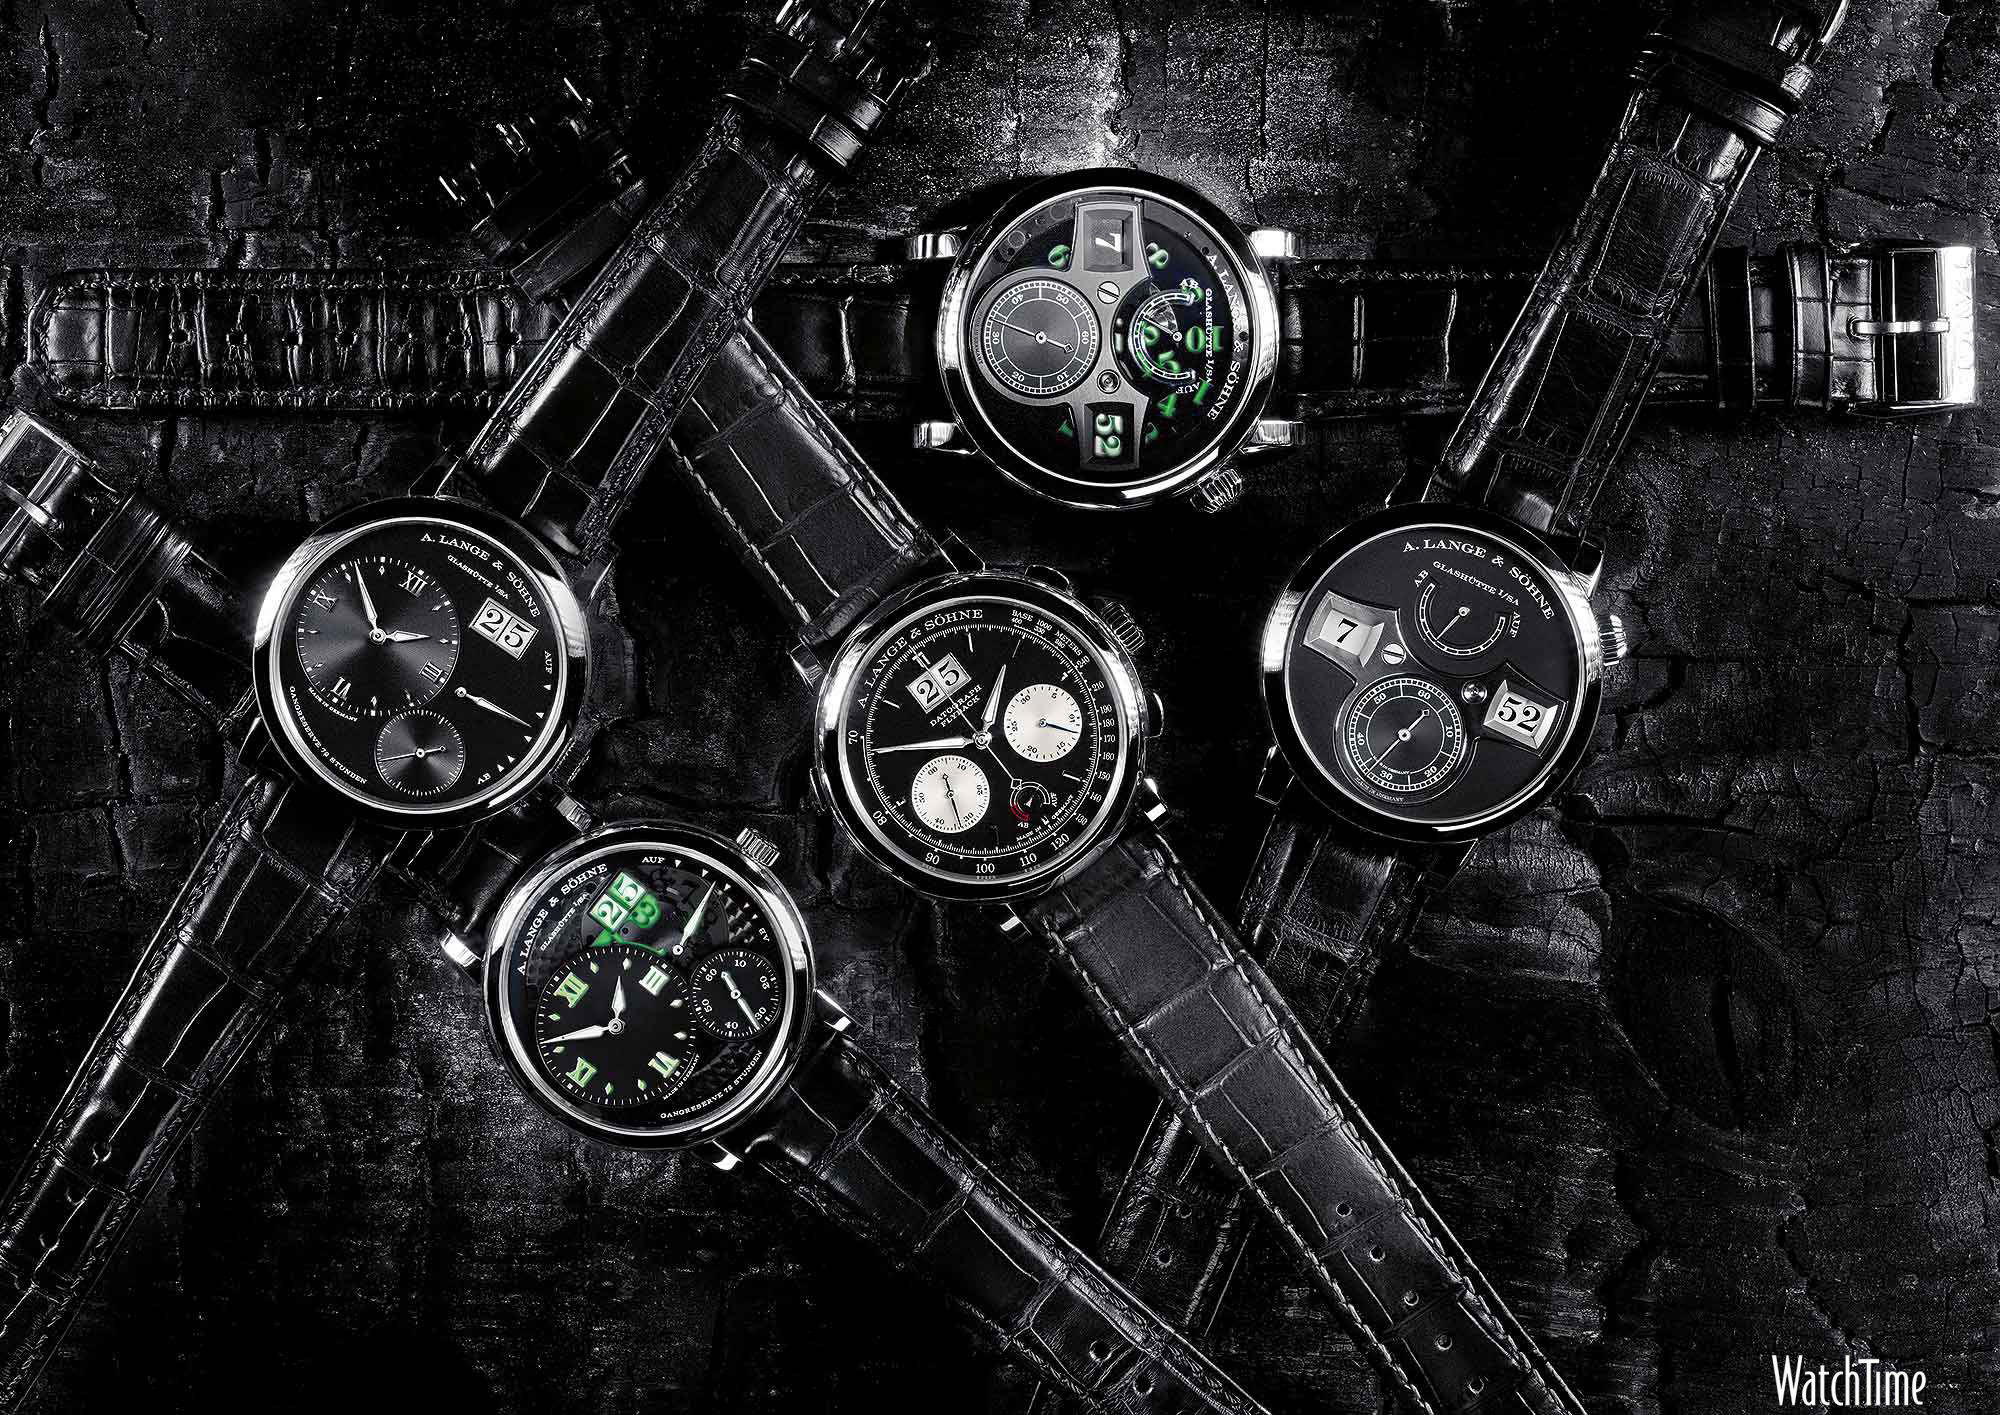 Watch Wallpaper: A. Lange & Söhne Watches in Basic Black ...